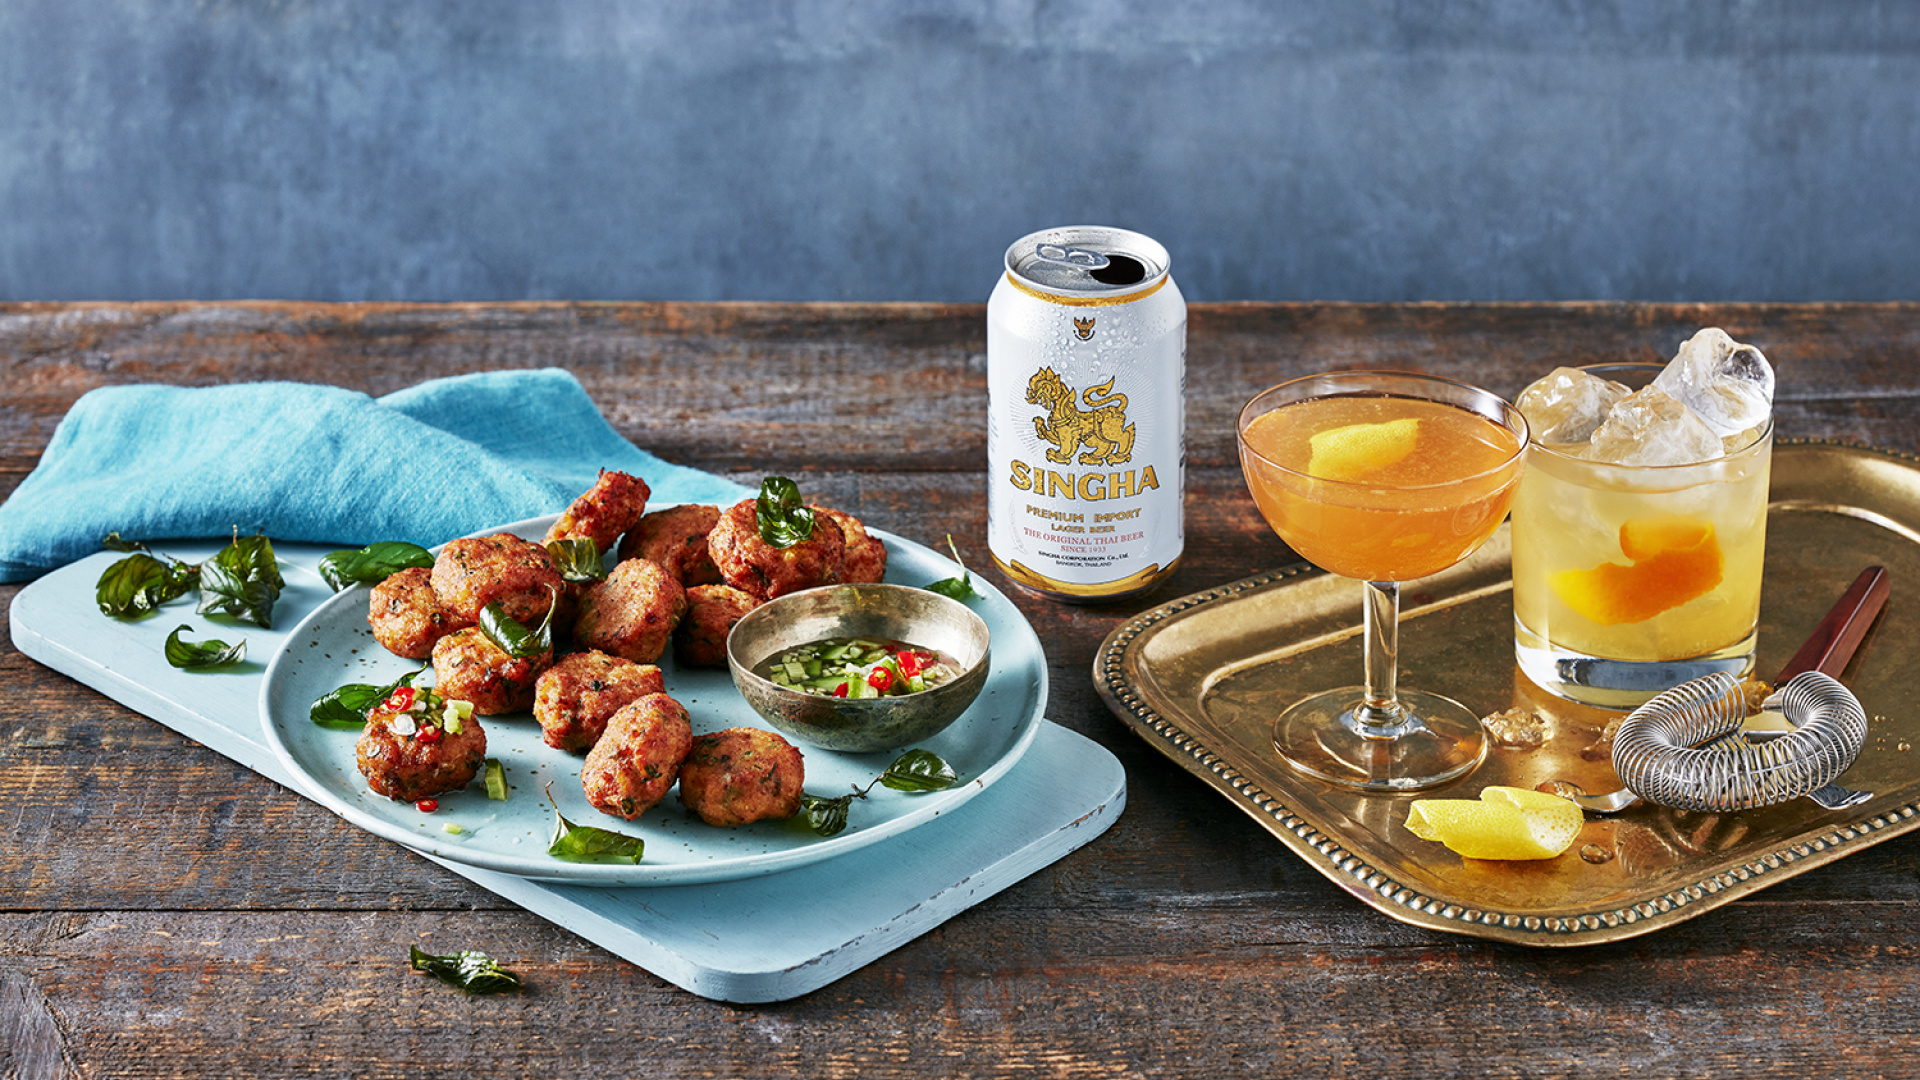 A recipe for Singha beer's Thai fishcakes with Ajut relish by Andy Oliver